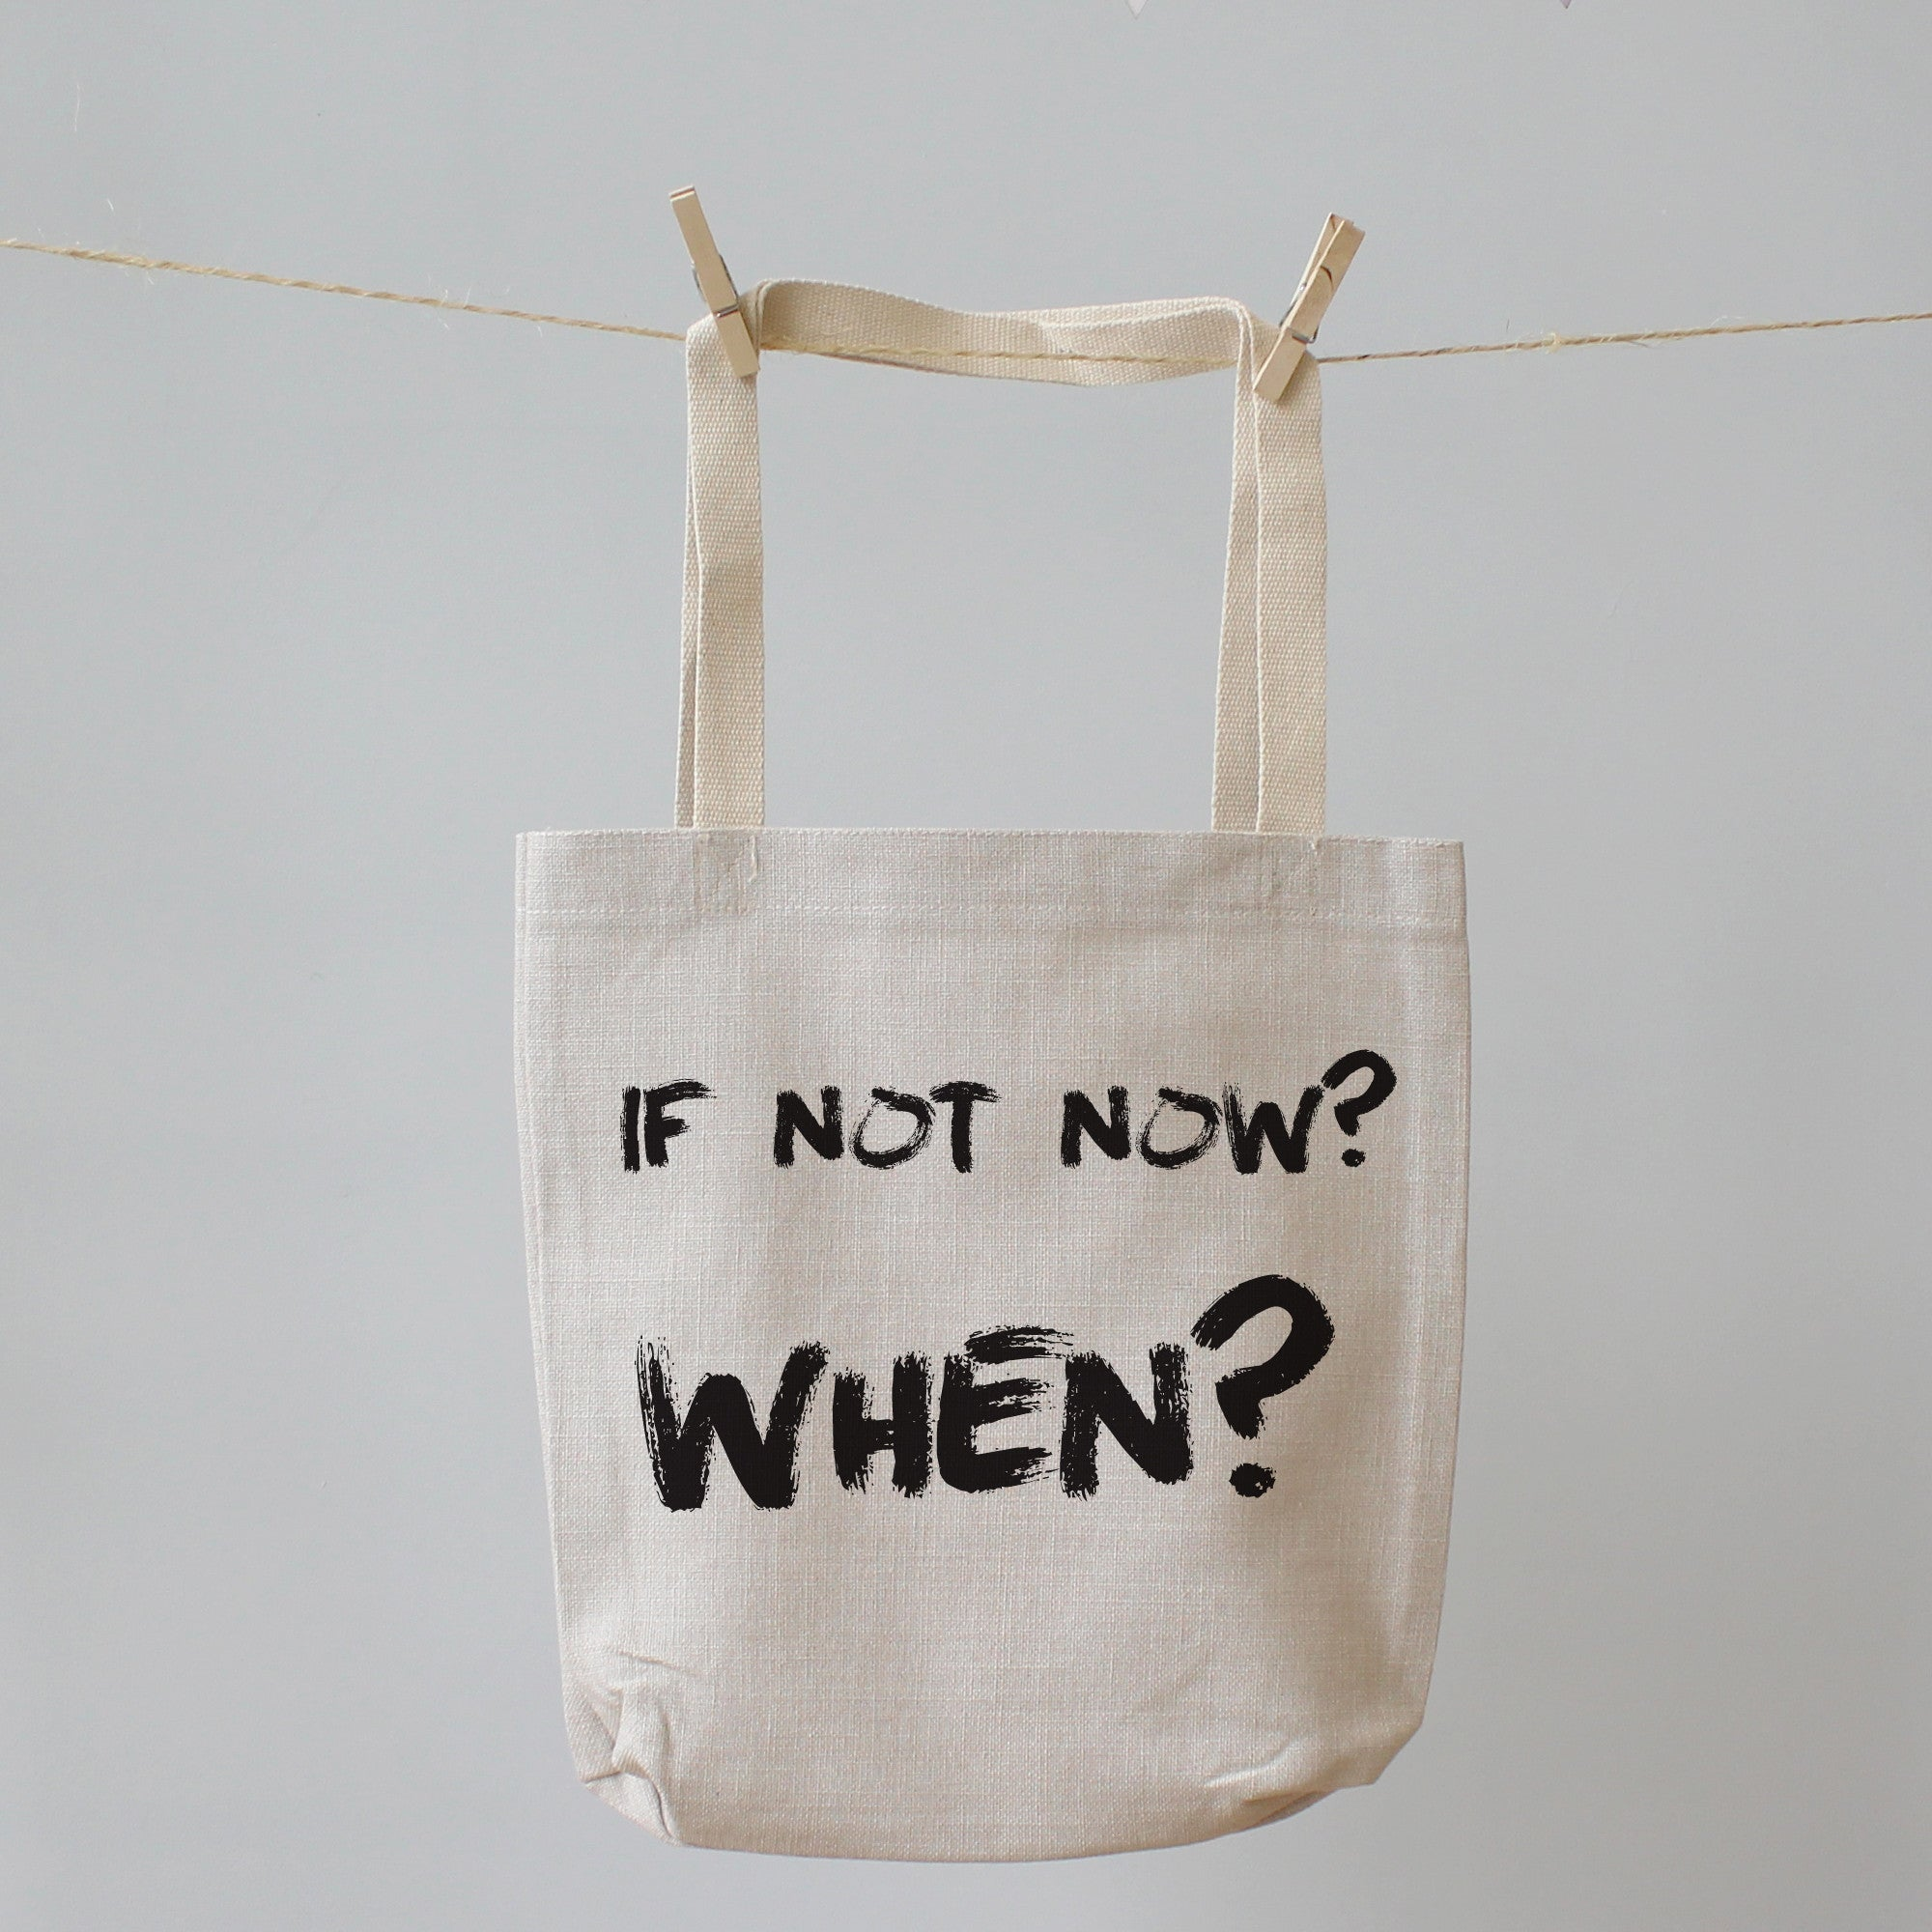 If not now When. Tote Shopping Bag